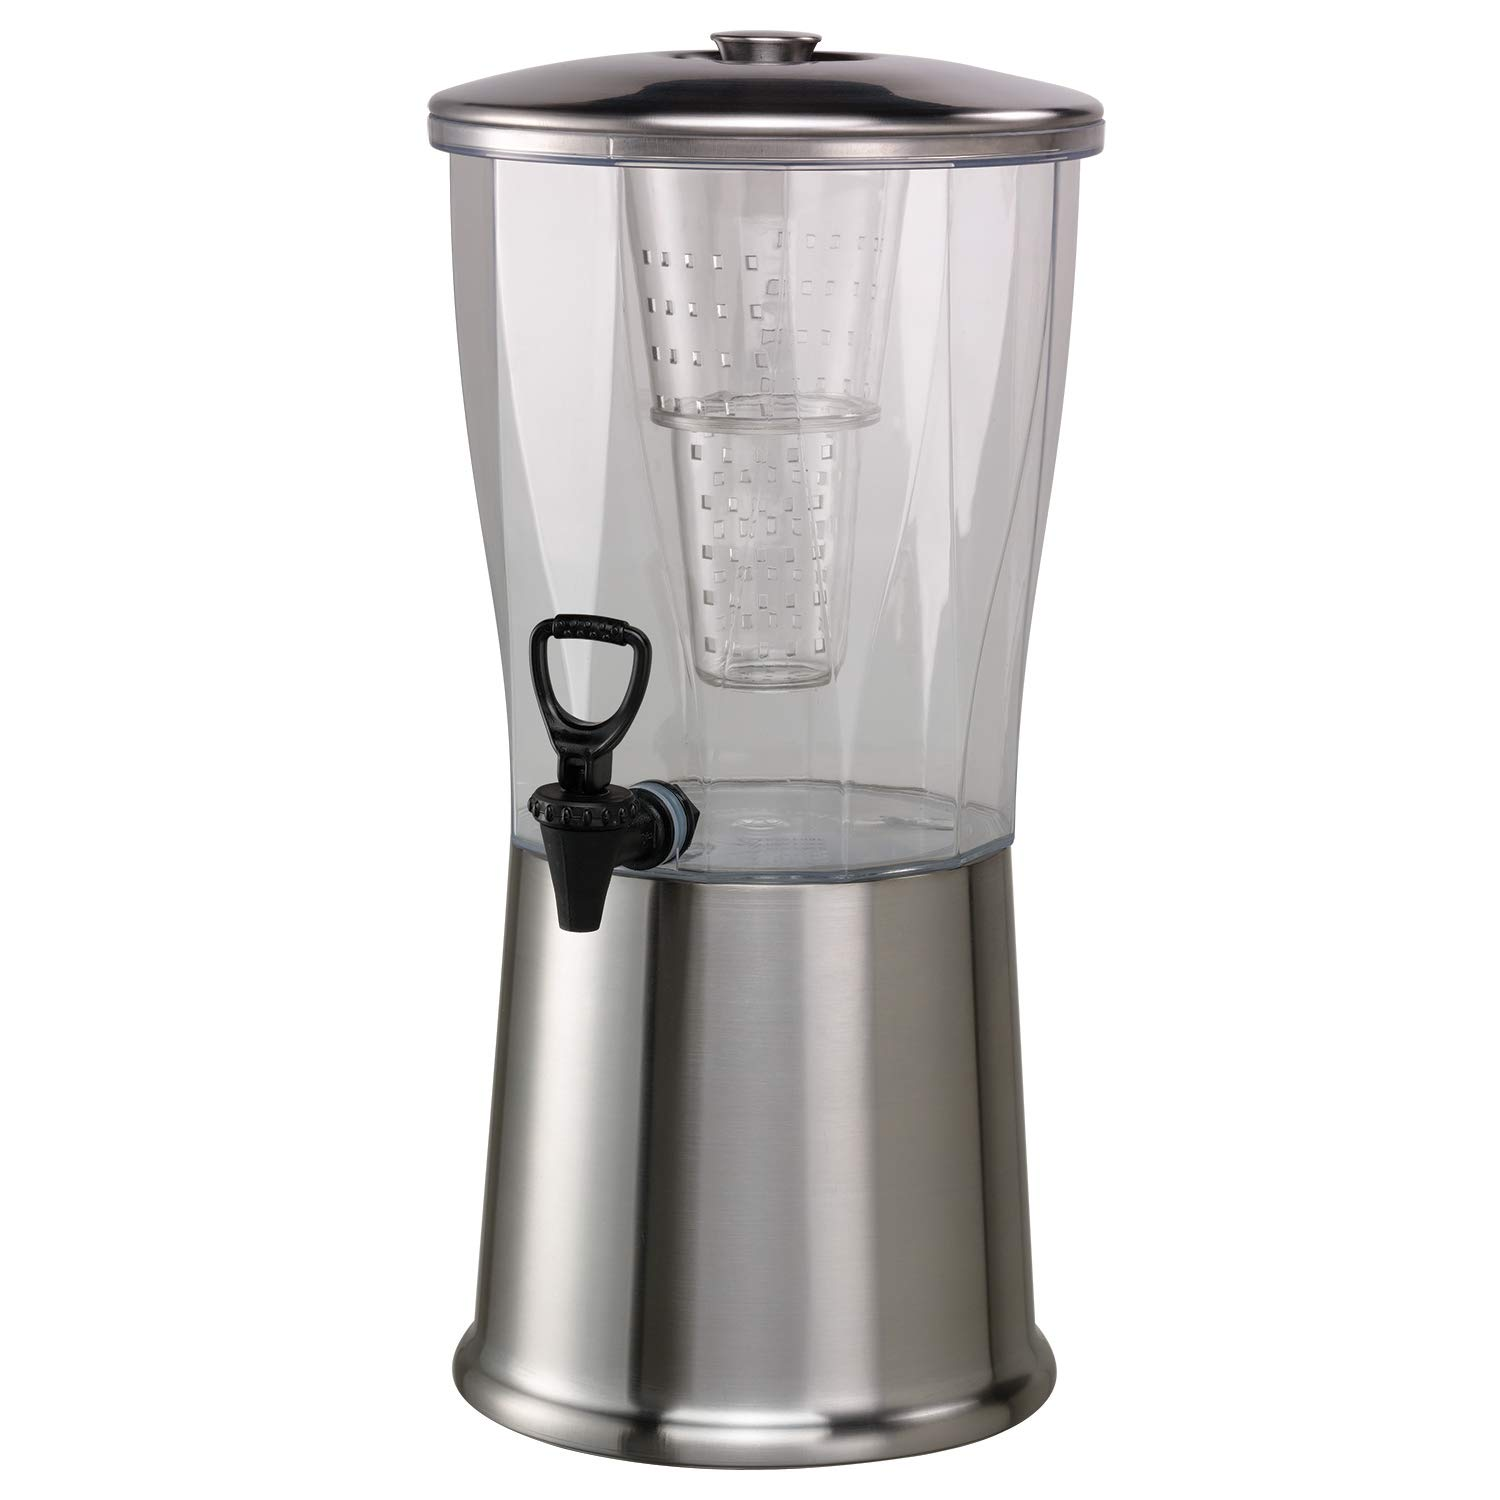 Service Ideas CBDRT3SS Beverage Dispenser, Round, 3 Gallon,Stainless Steel w/Ice Well and Infuser Tube, Silver